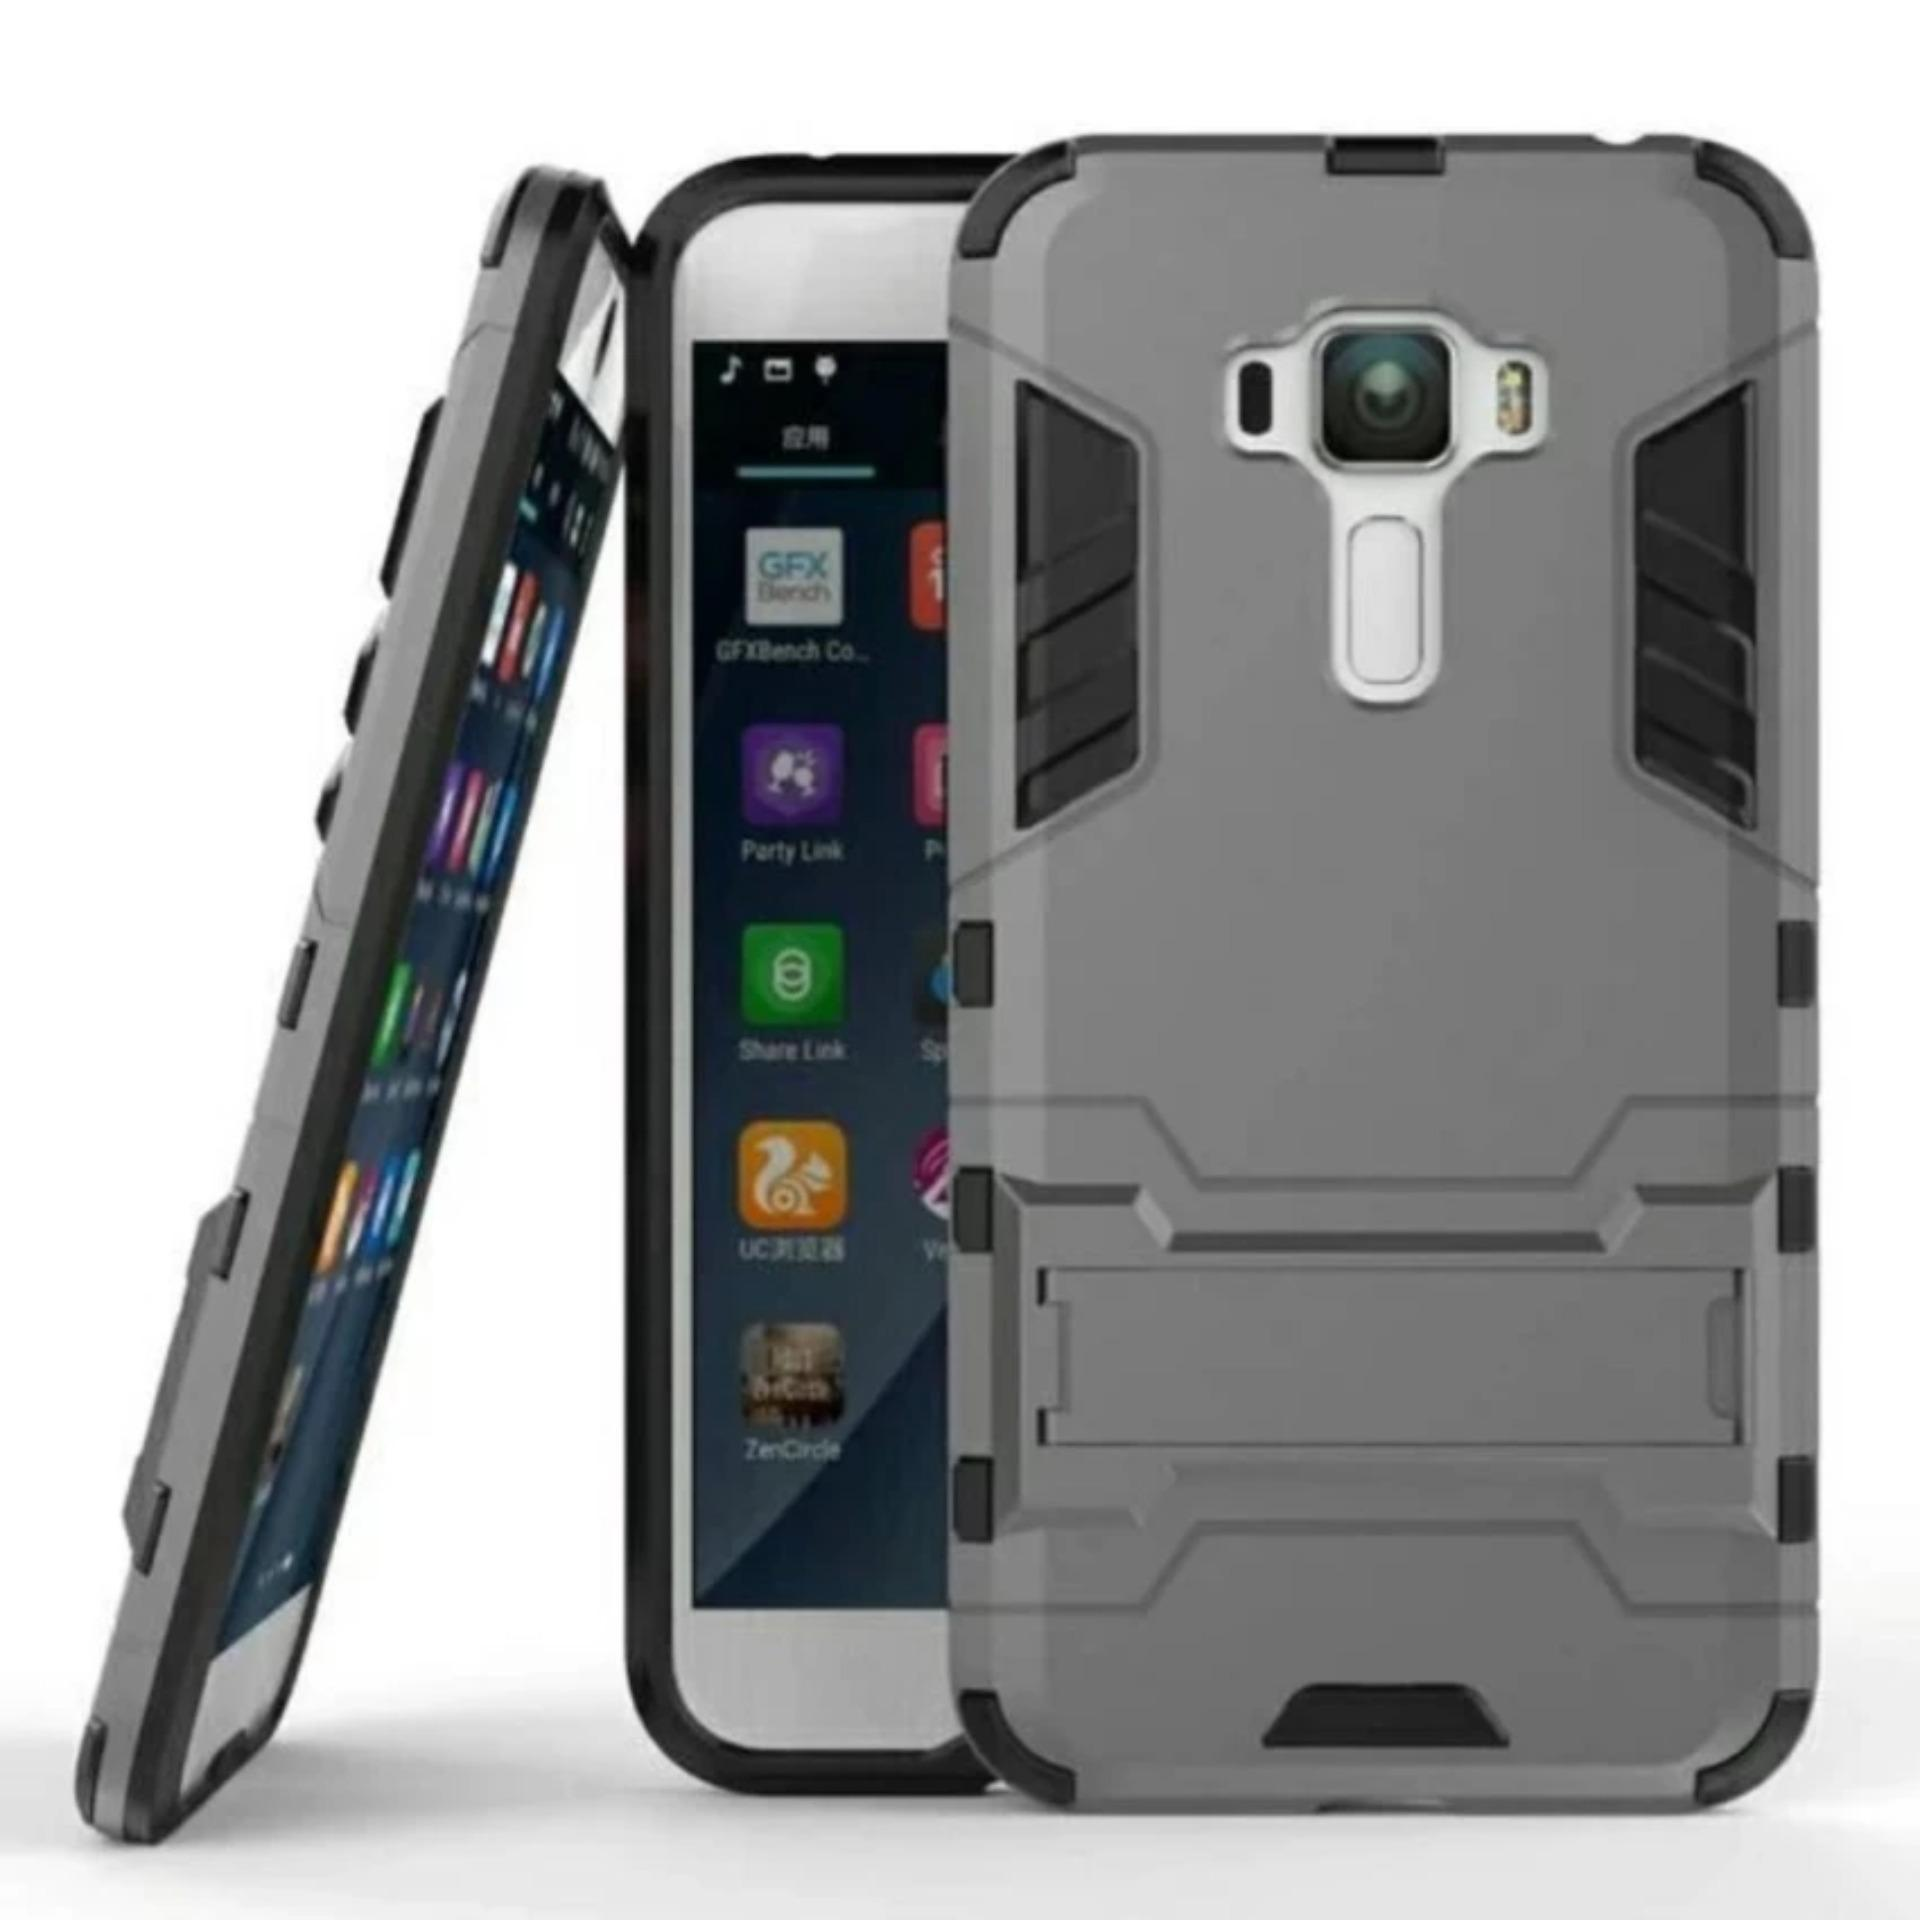 ... Case Armor Shockproof Asus Zenfone 3 ZE552KL Iron Man Kick Stand Series - Abu - Grey ...